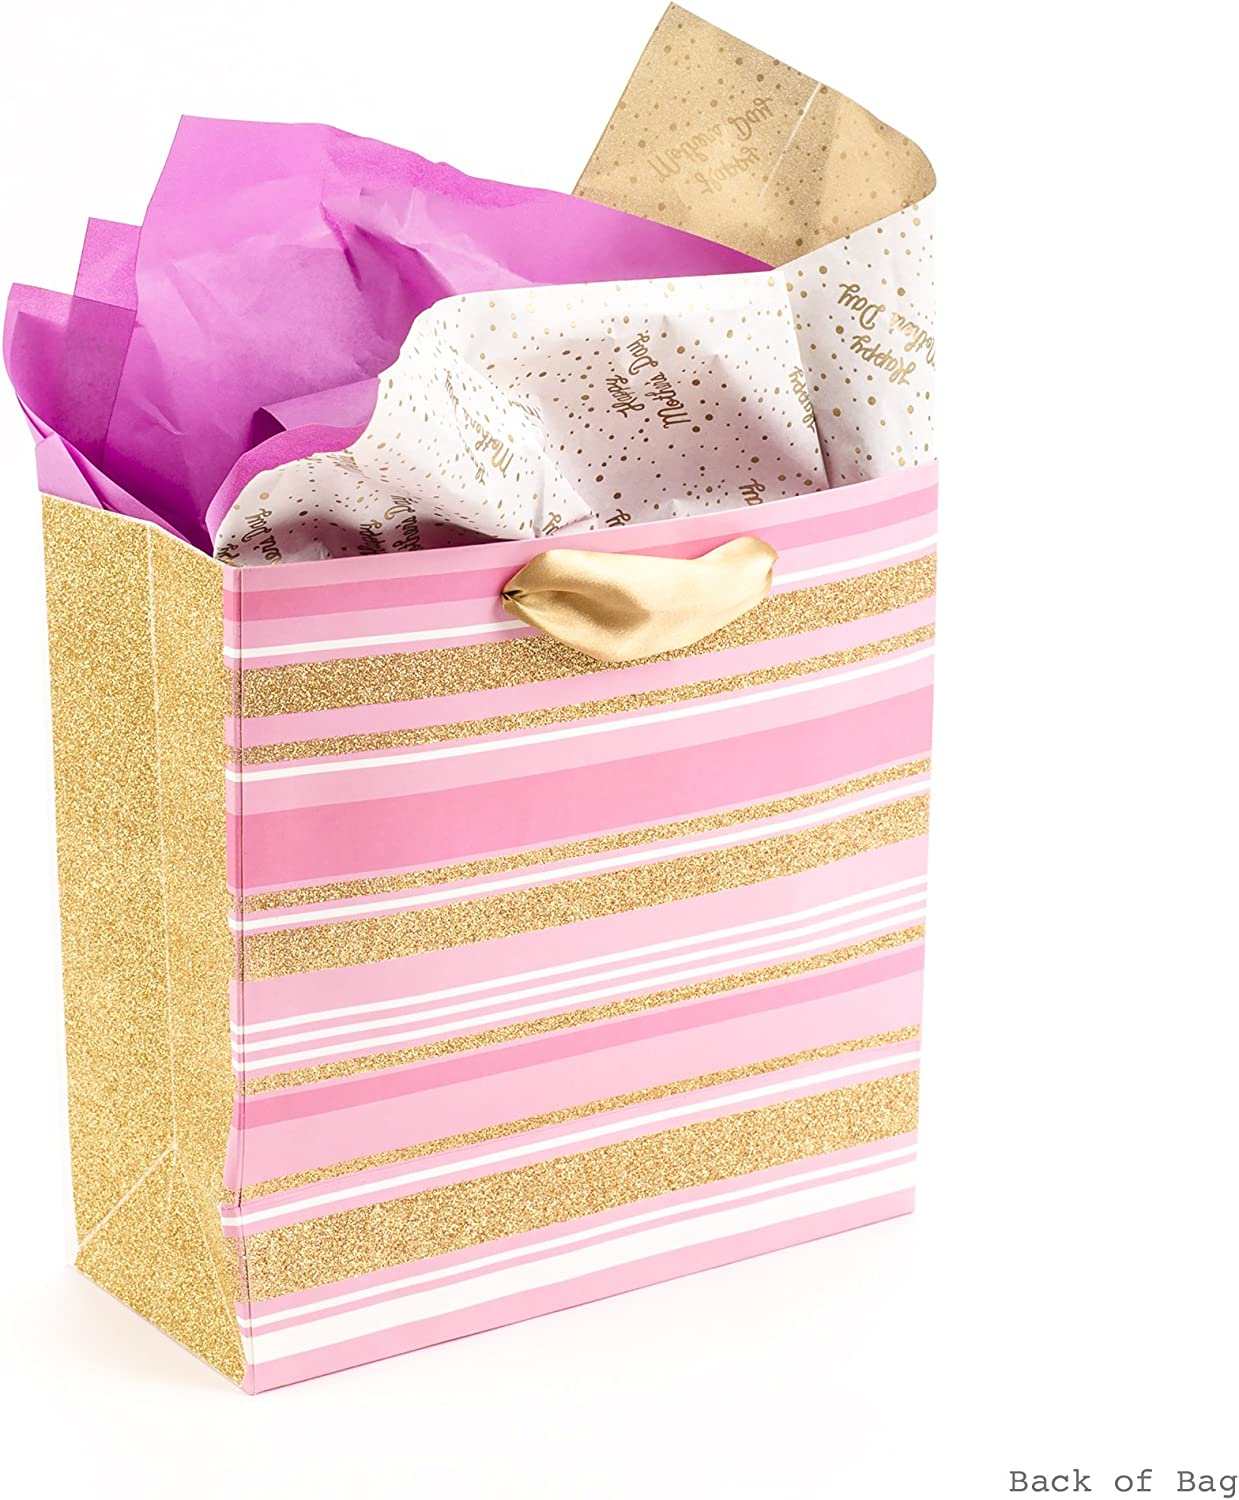 Pink Floral Heart, Gold Glitter Hallmark Signature 10 Large Mothers Day Gift Bag with Tissue Paper